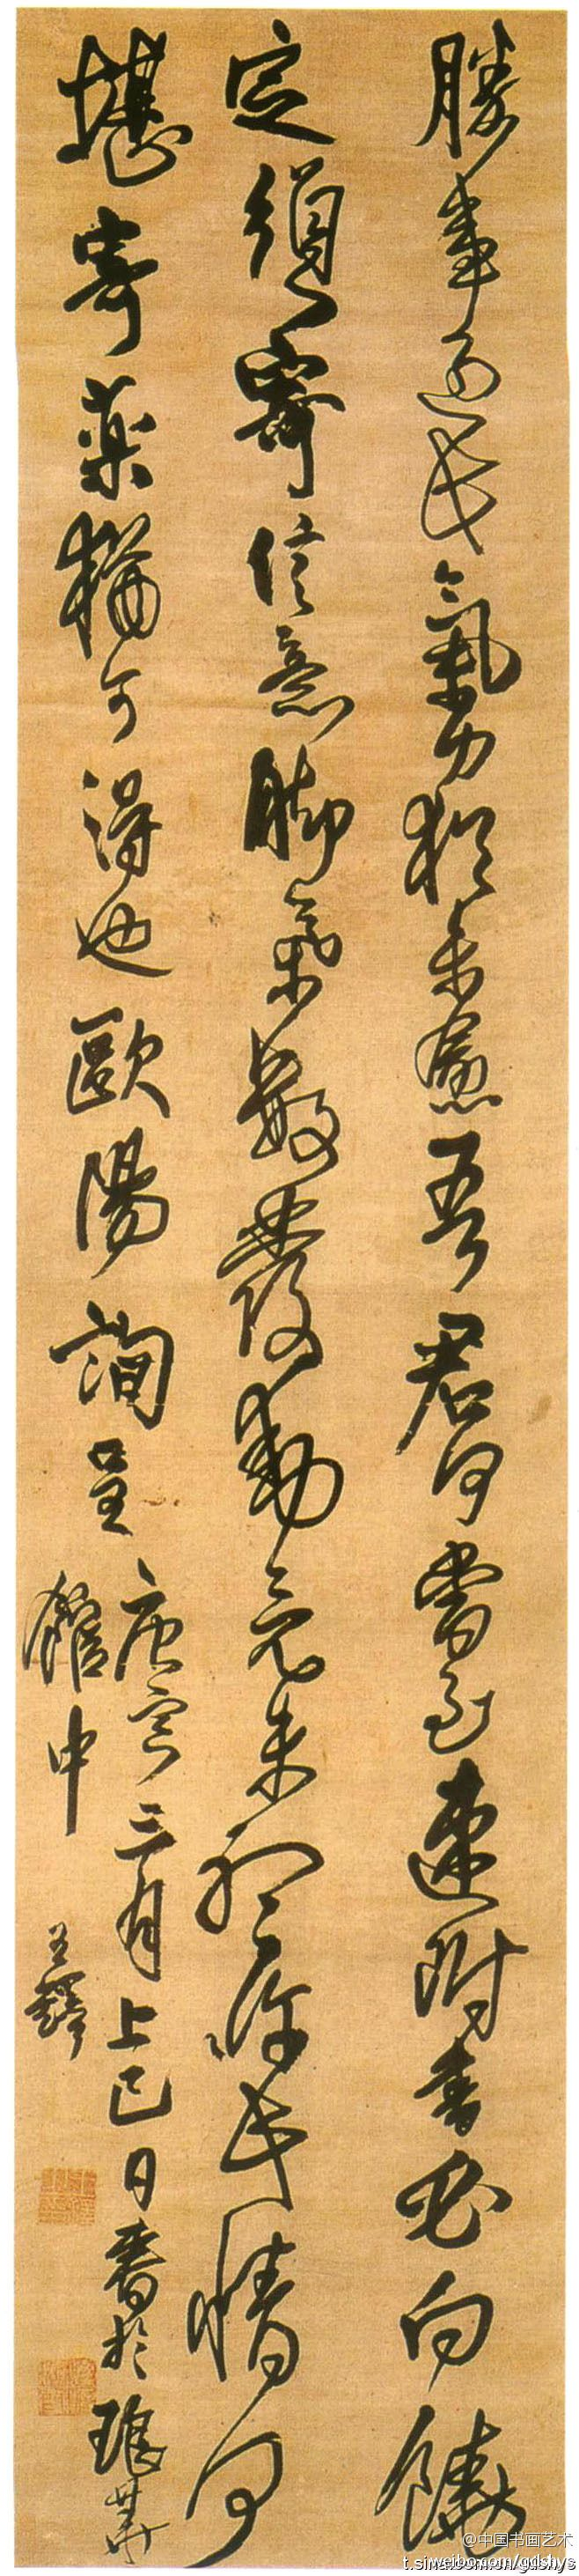 206 Best Chinese Calligraphy Images On Pinterest Chinese